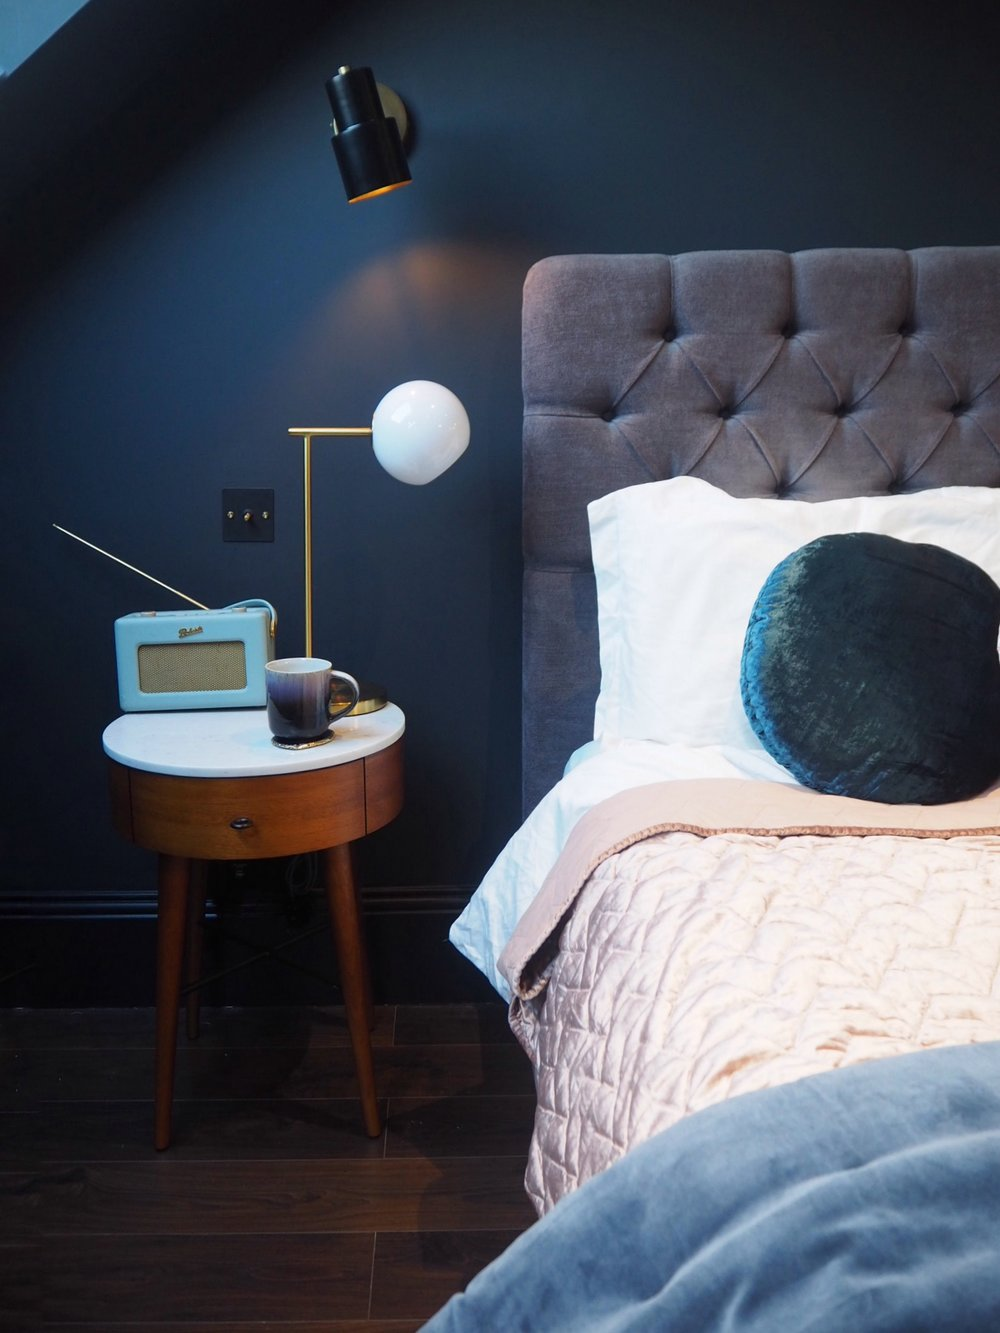 Penelope bedside tables   £349, West Elm,   Staggered glass table lamp   £99, West Elm.   Ombre Reactive glaze mug   £10 from West Elm,   Agate blue/ gold coasters   - pack of 4 £54